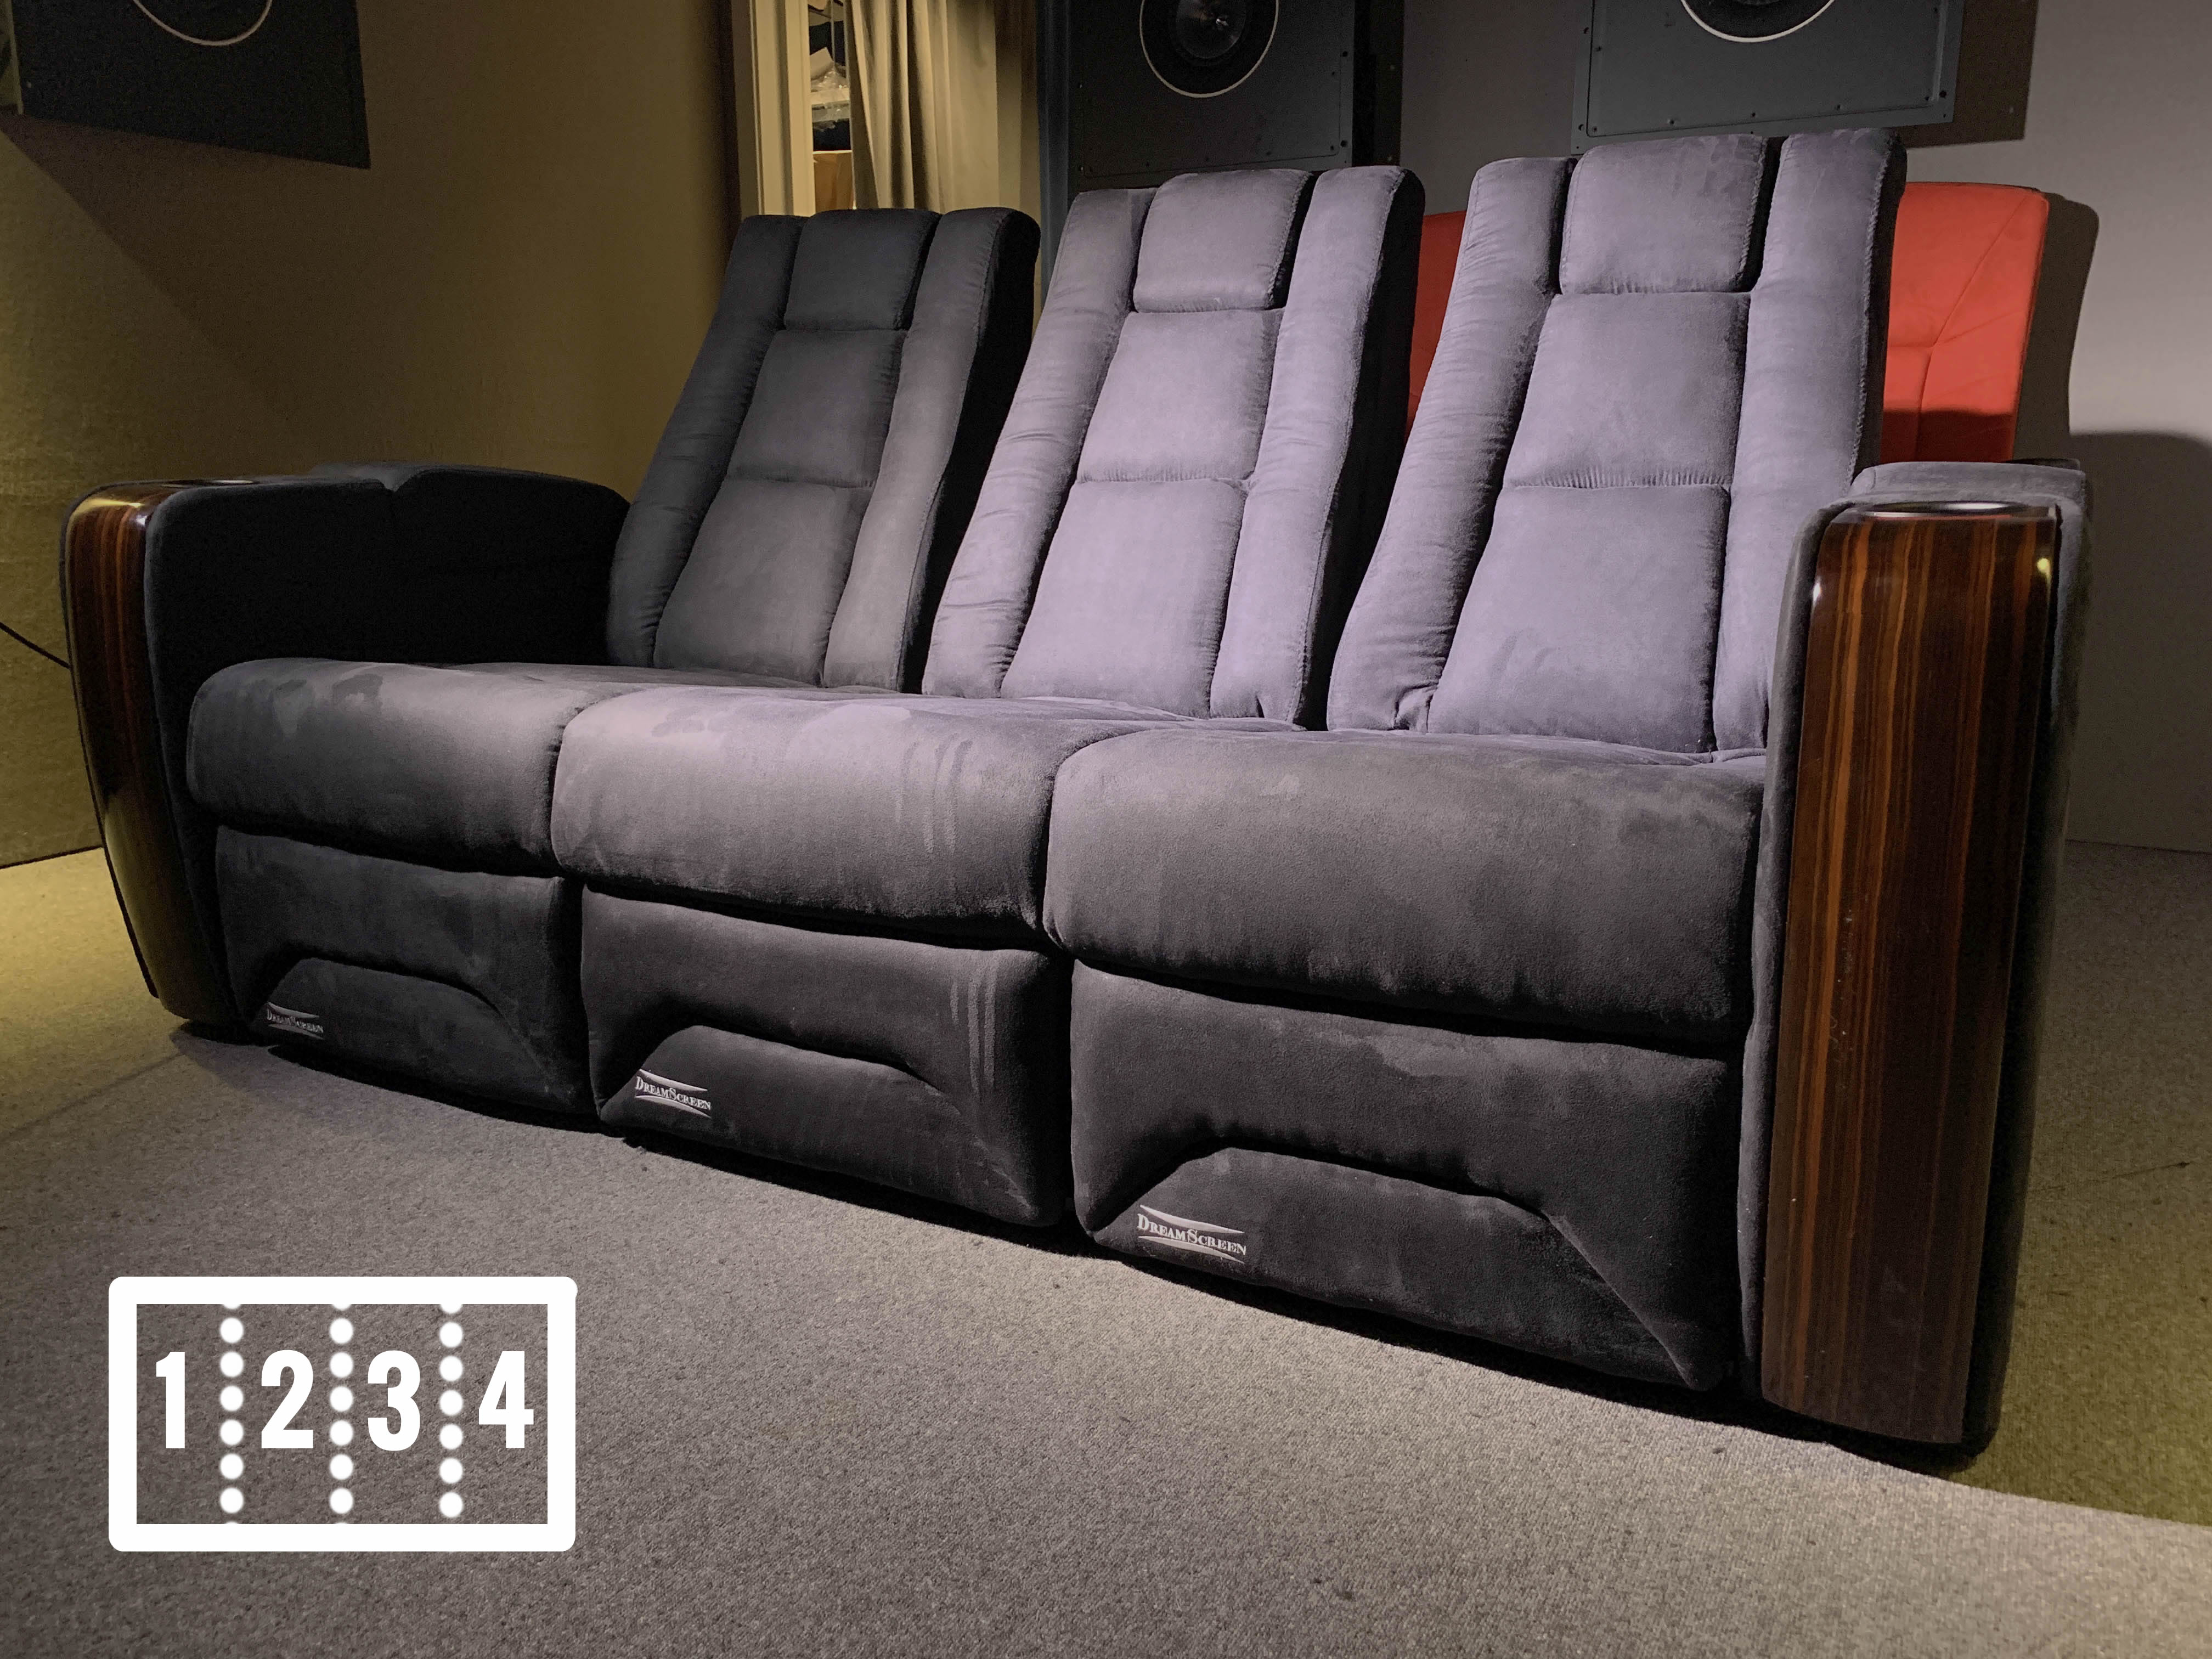 DreamScreen CineSeat ProMotor v4 Motorisert Recliner 4-seter TextileShield Mikrofiber Sort LOVESEAT